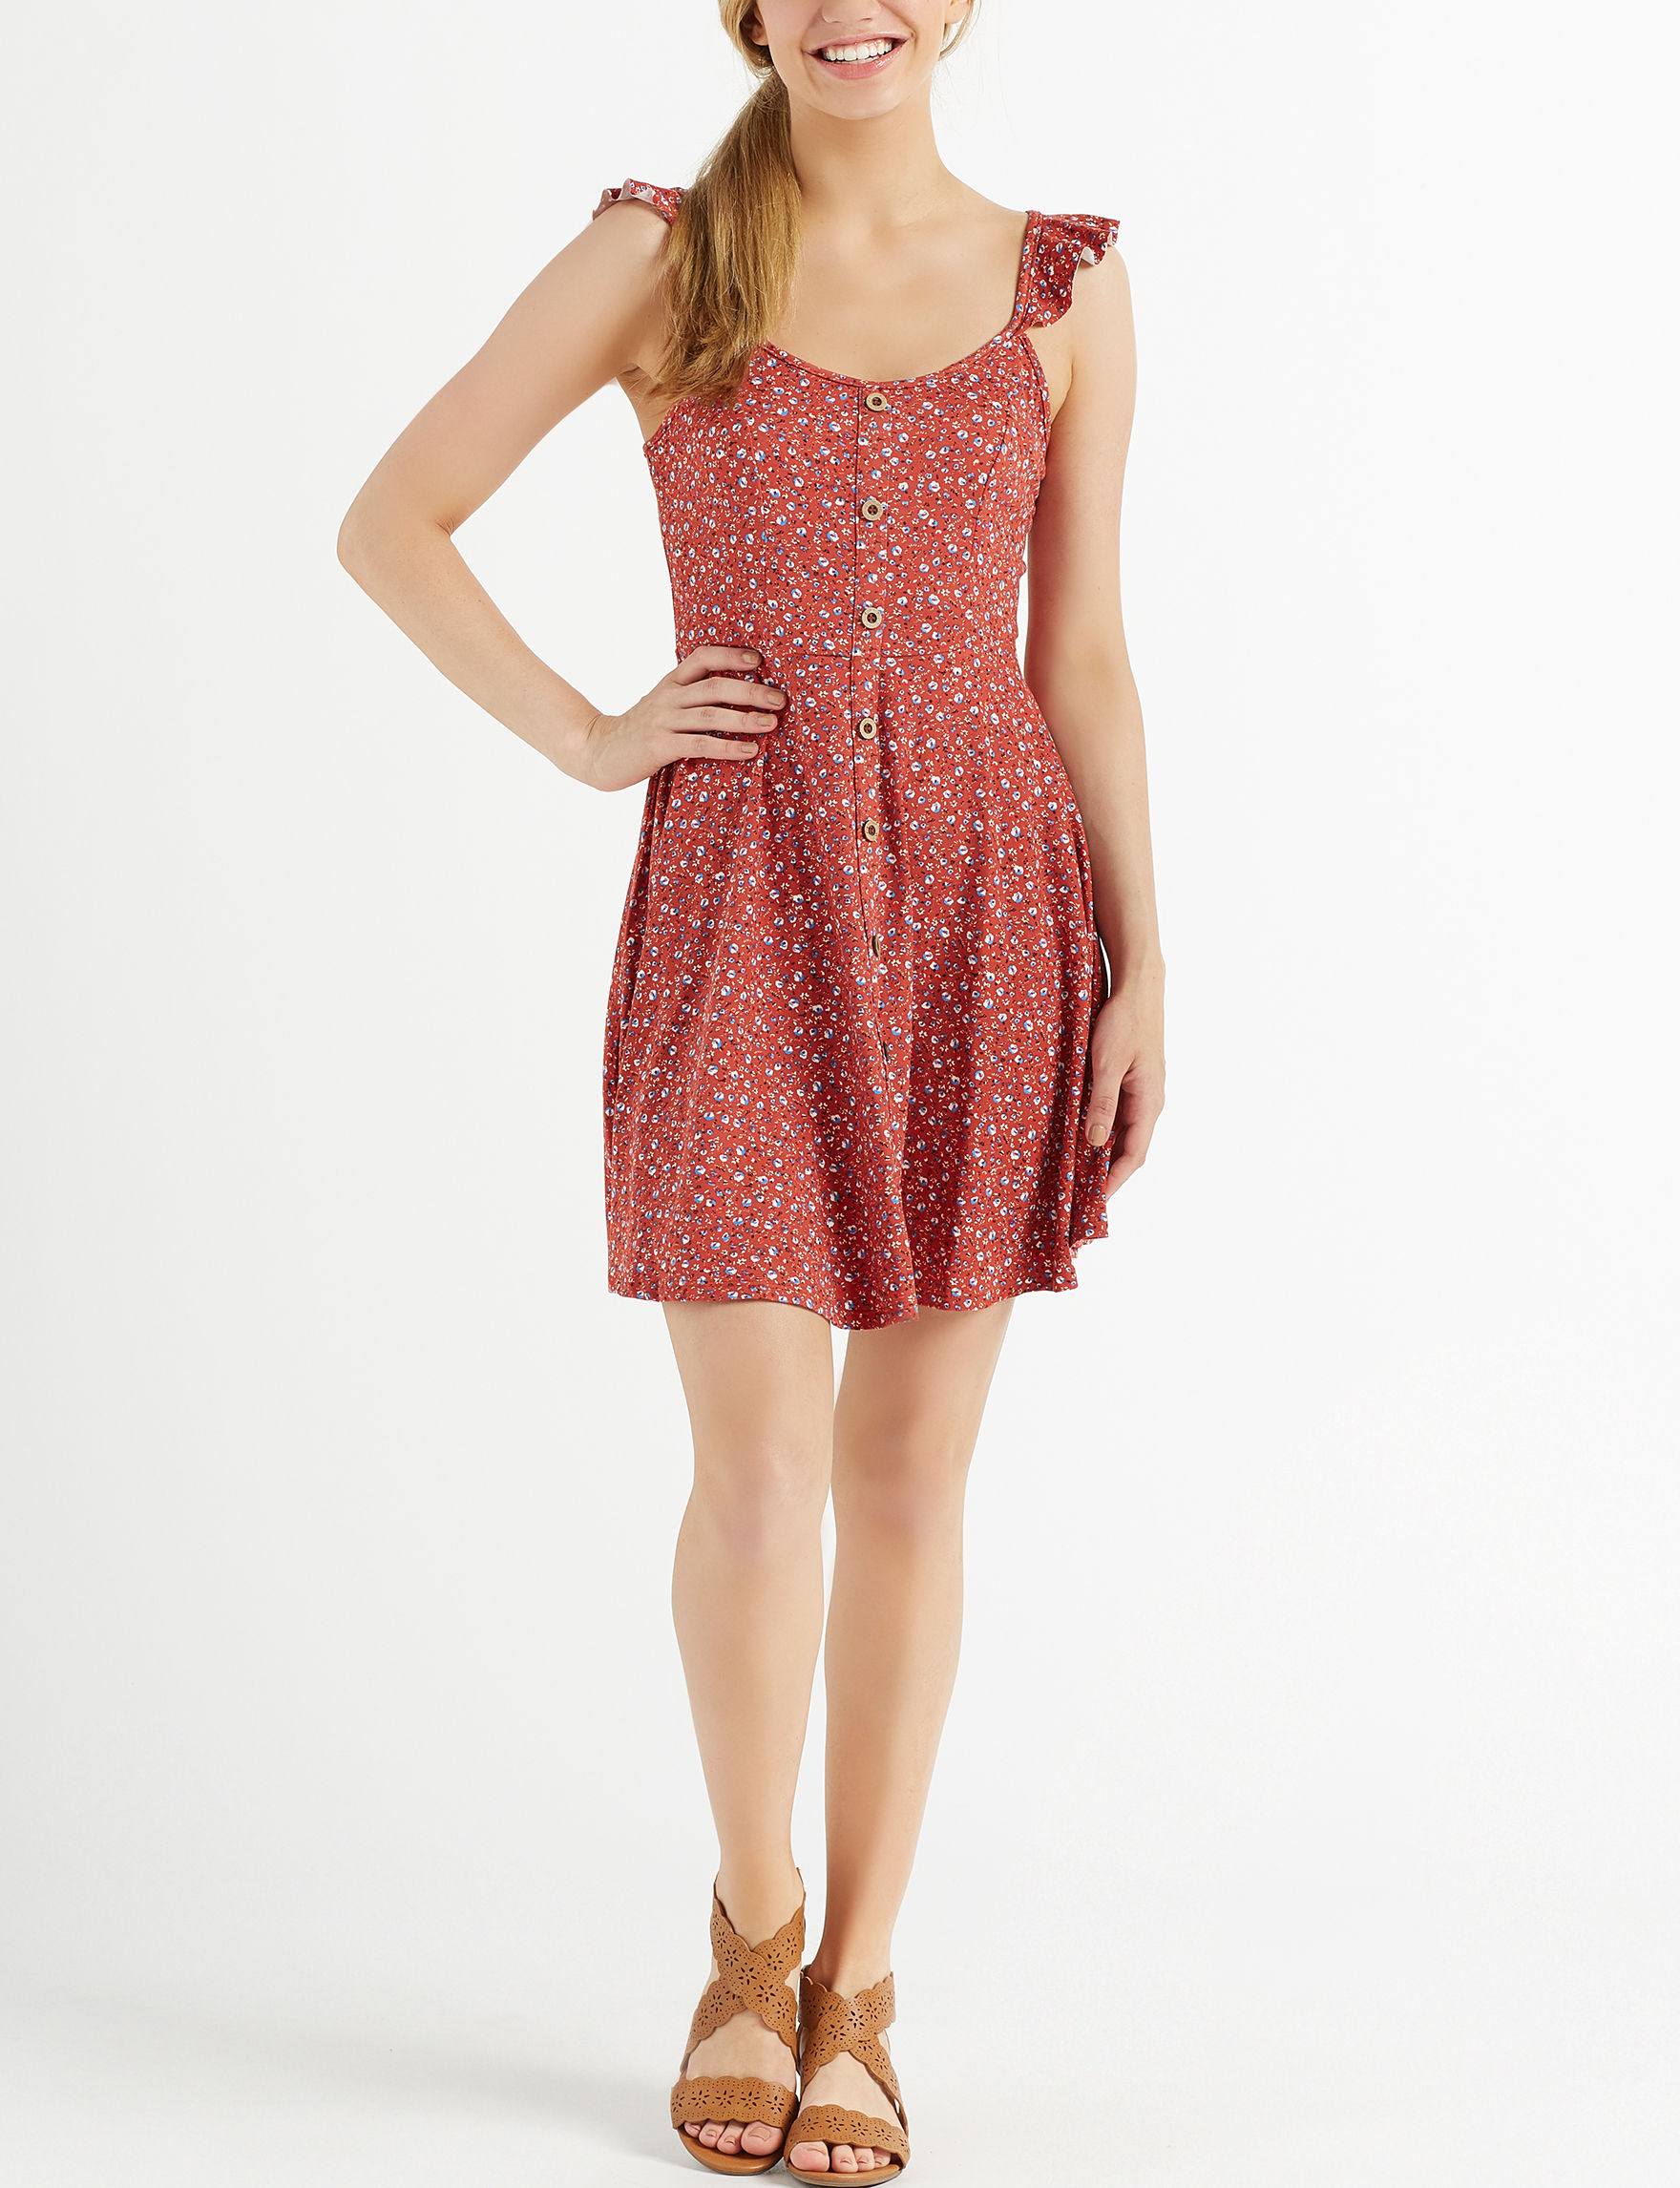 Sequin Hearts Rust Everyday & Casual Fit & Flare Dresses